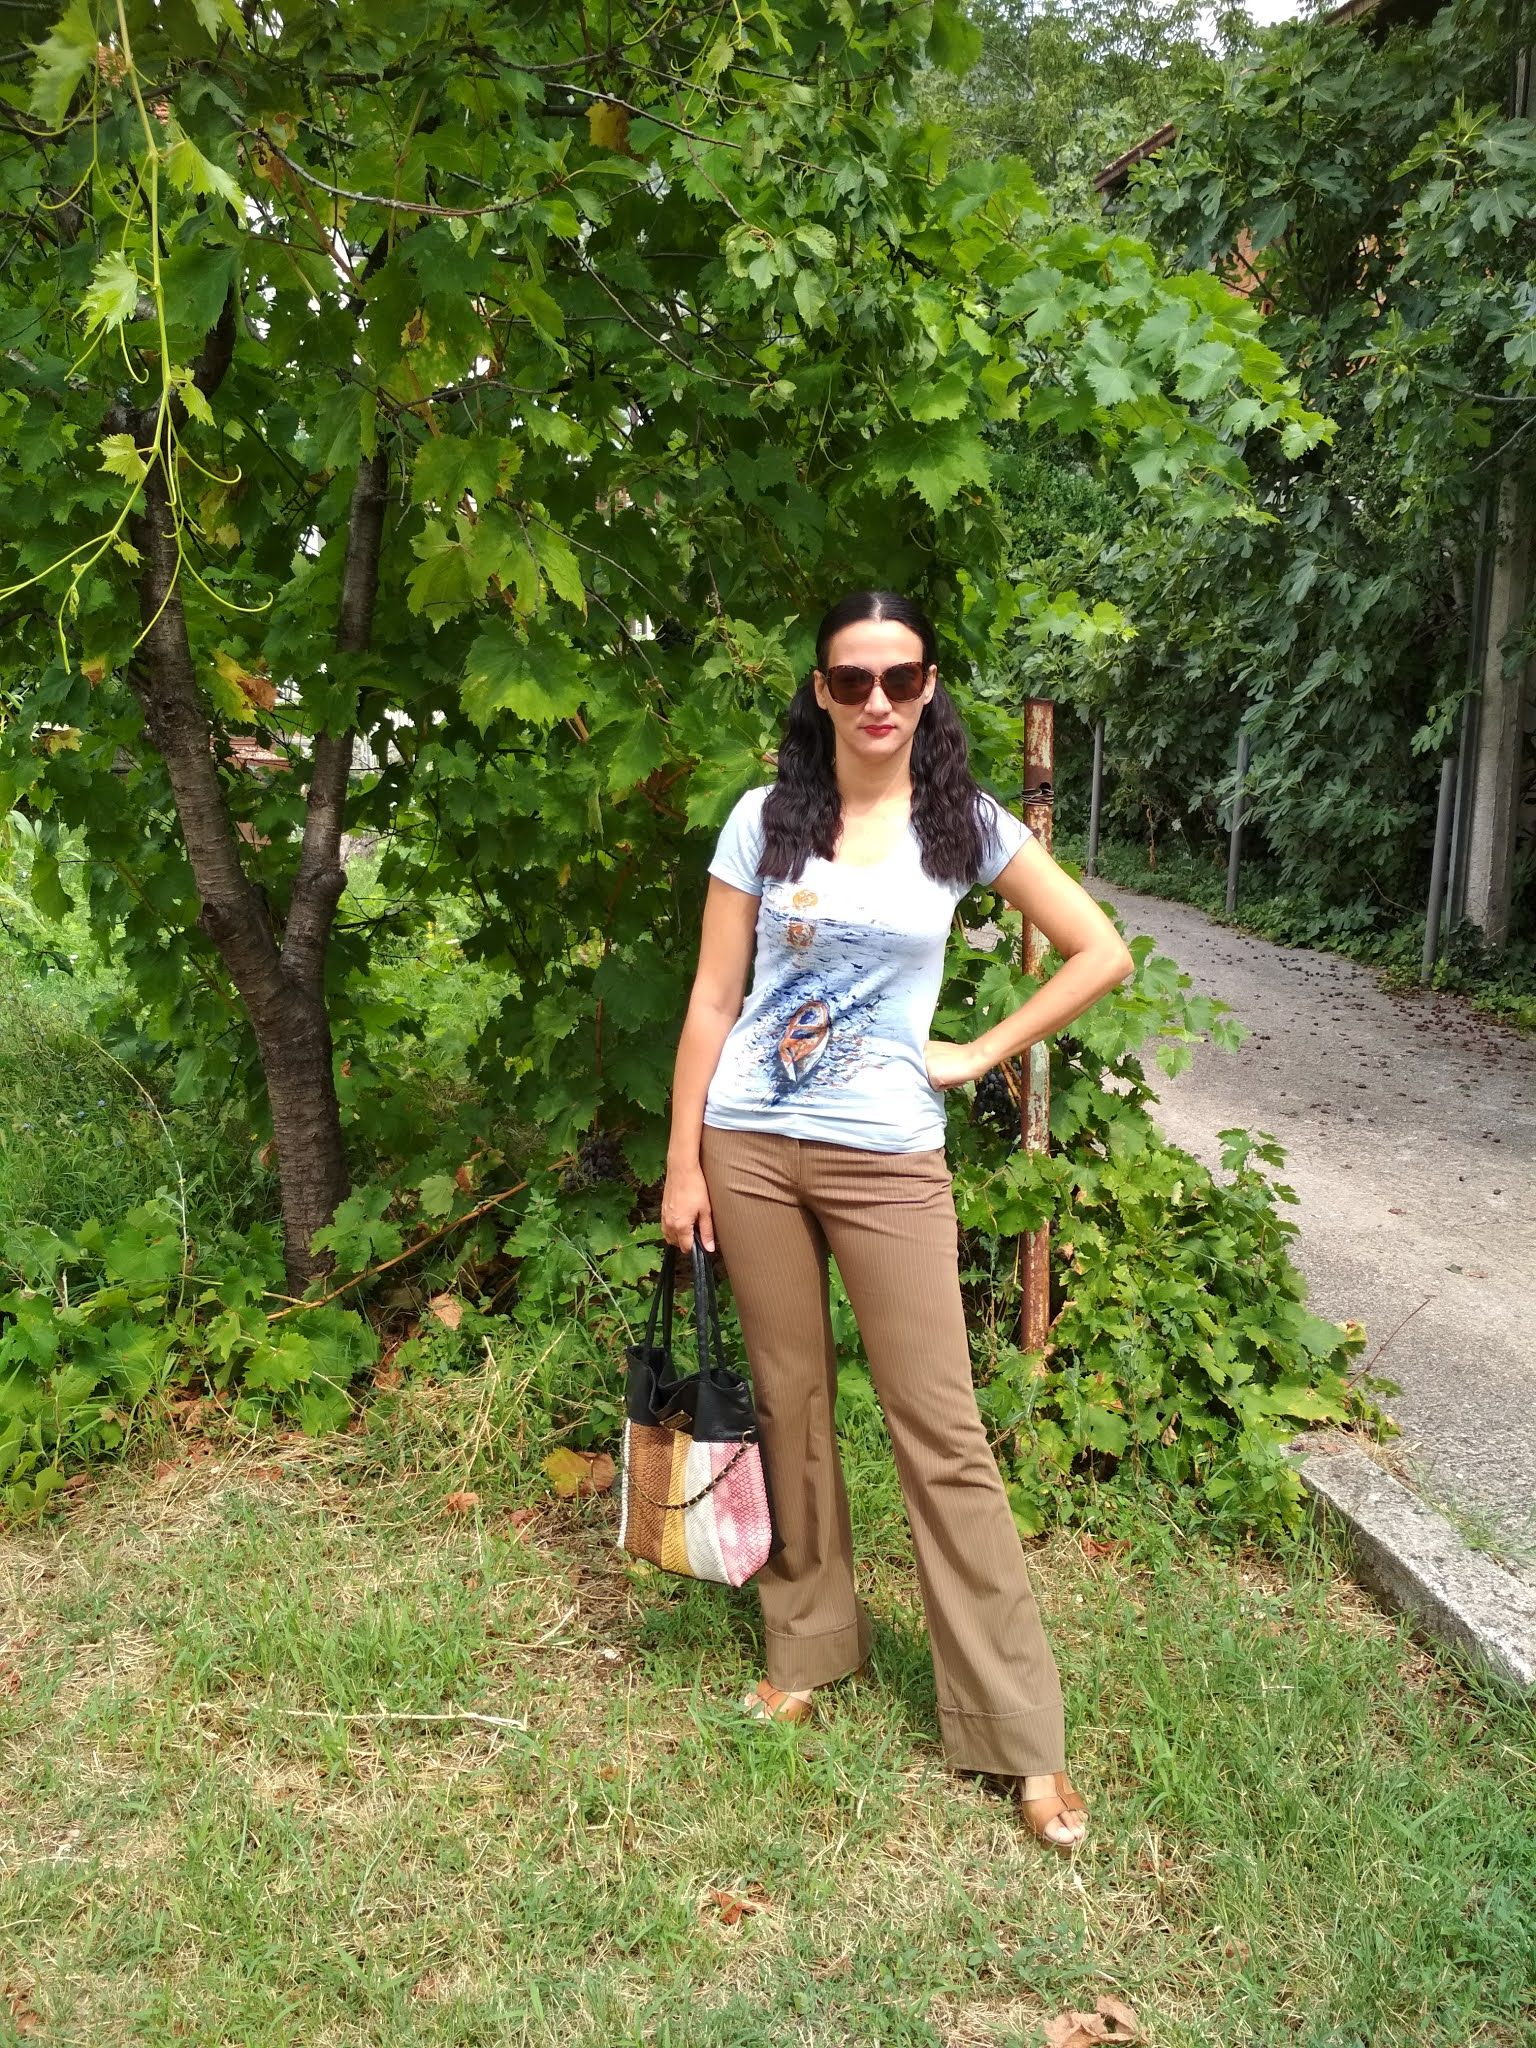 #modaodaradosti FIVE EASY CHIC SUMMER OUTFIT IDEAS THAT DON'T INVOLVE DRESSES